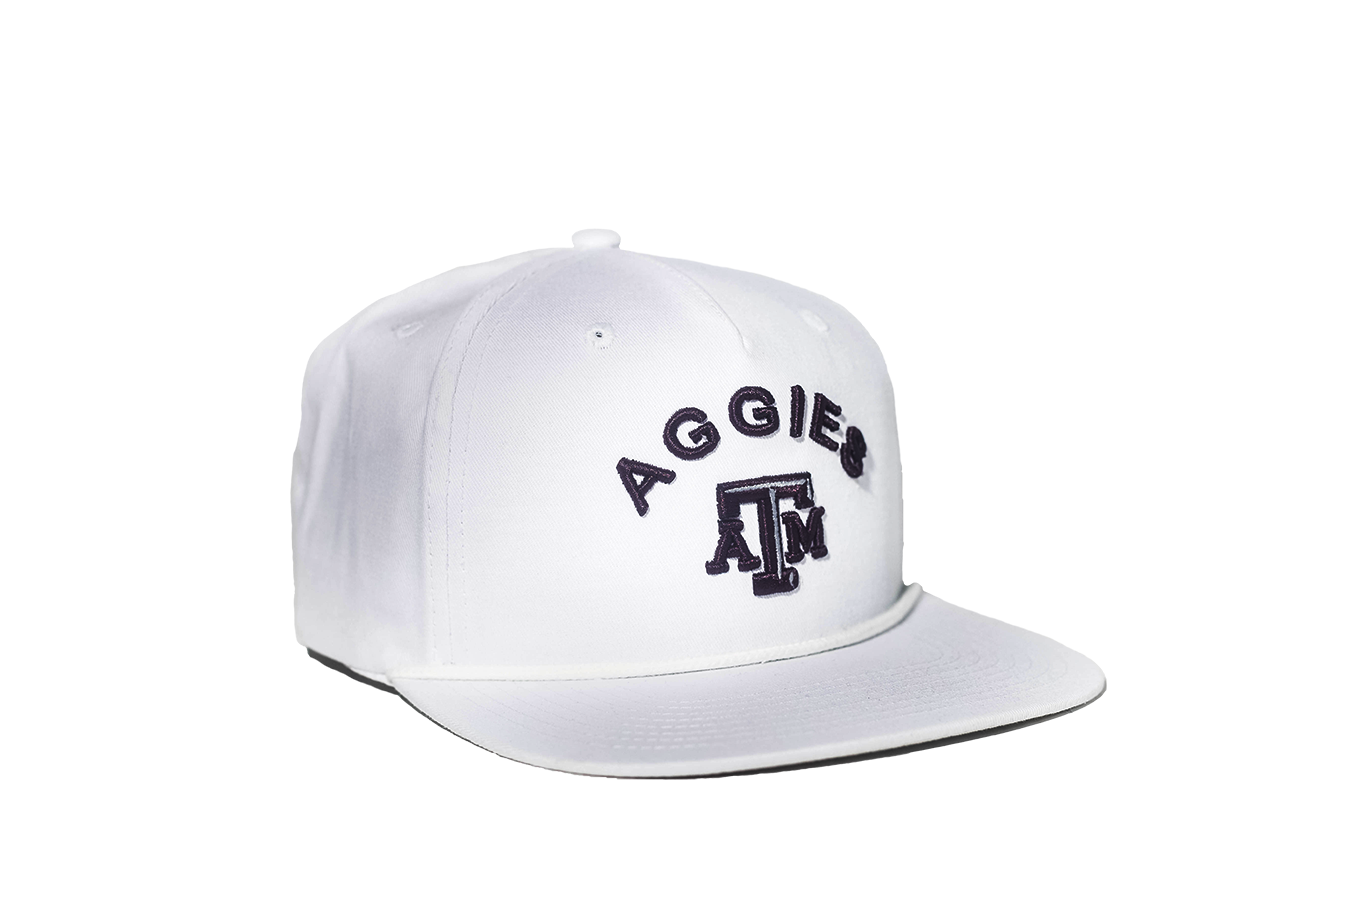 98b8a5ee7144 Texas A M University Classic Retro Snapback Hat - White – The Collegiate  Player